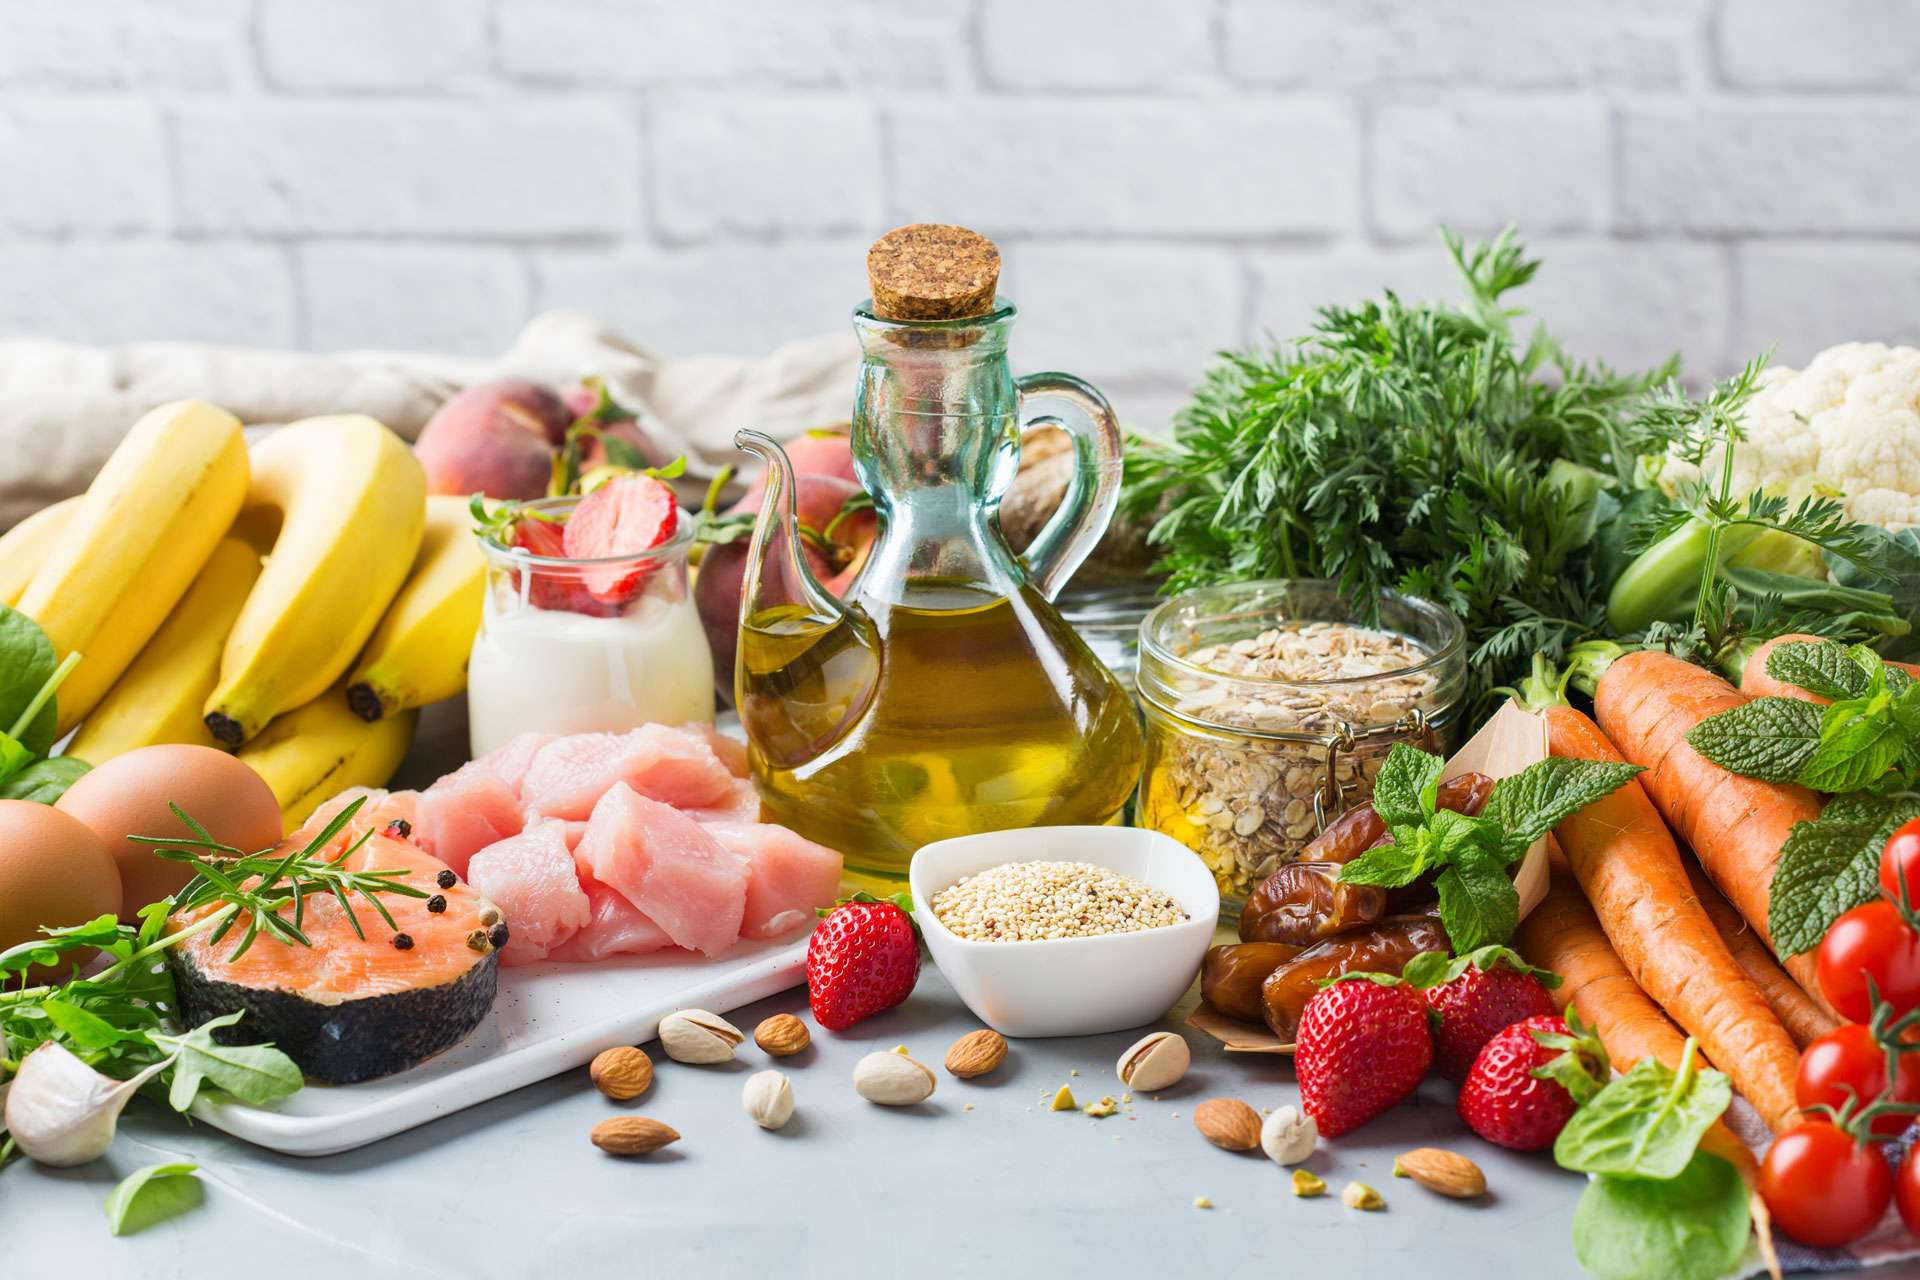 The Mediterranean Diet: What Does It Mean And Why Is It So Special?